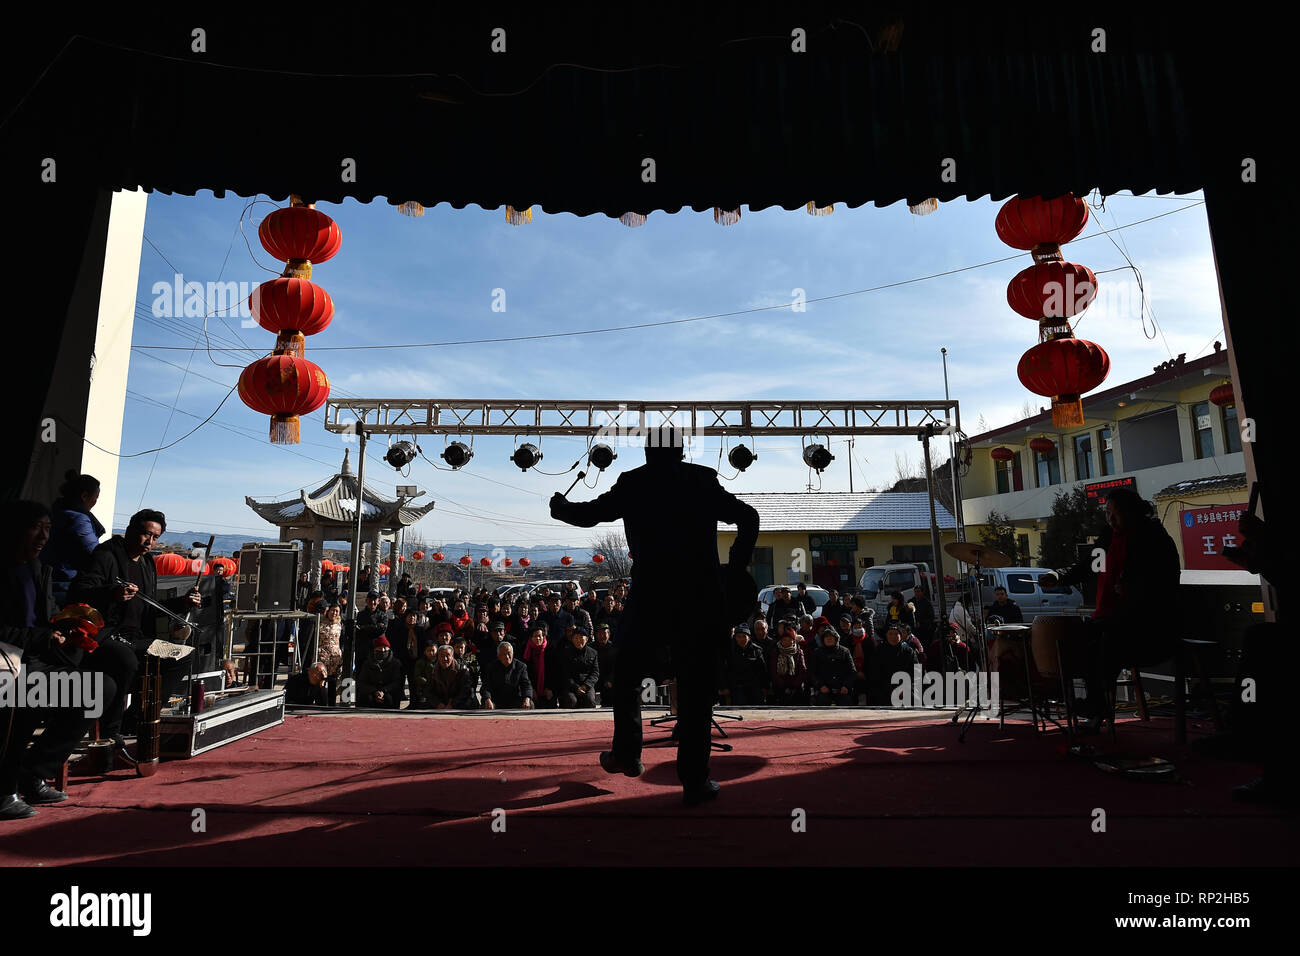 (190220) -- WUXIANG, Feb. 20, 2019 (Xinhua) -- A troupe performs for villagers at an open-air theater in Wangzhuanggou Village, Wuxiang County of north China's Shanxi Province, Feb. 16, 2019. For generations, residents of Wangzhuanggou Village barely scraped a living as a result of geographical isolation. However, a great change has been made since a series of poverty relief programs were launched in 2014. The whole village has been lifted out of poverty by the year of 2018 with the per capita annual income rising to 6,100 yuan (907 U.S. dollars) that enables villagers to spend on an grand cel - Stock Image